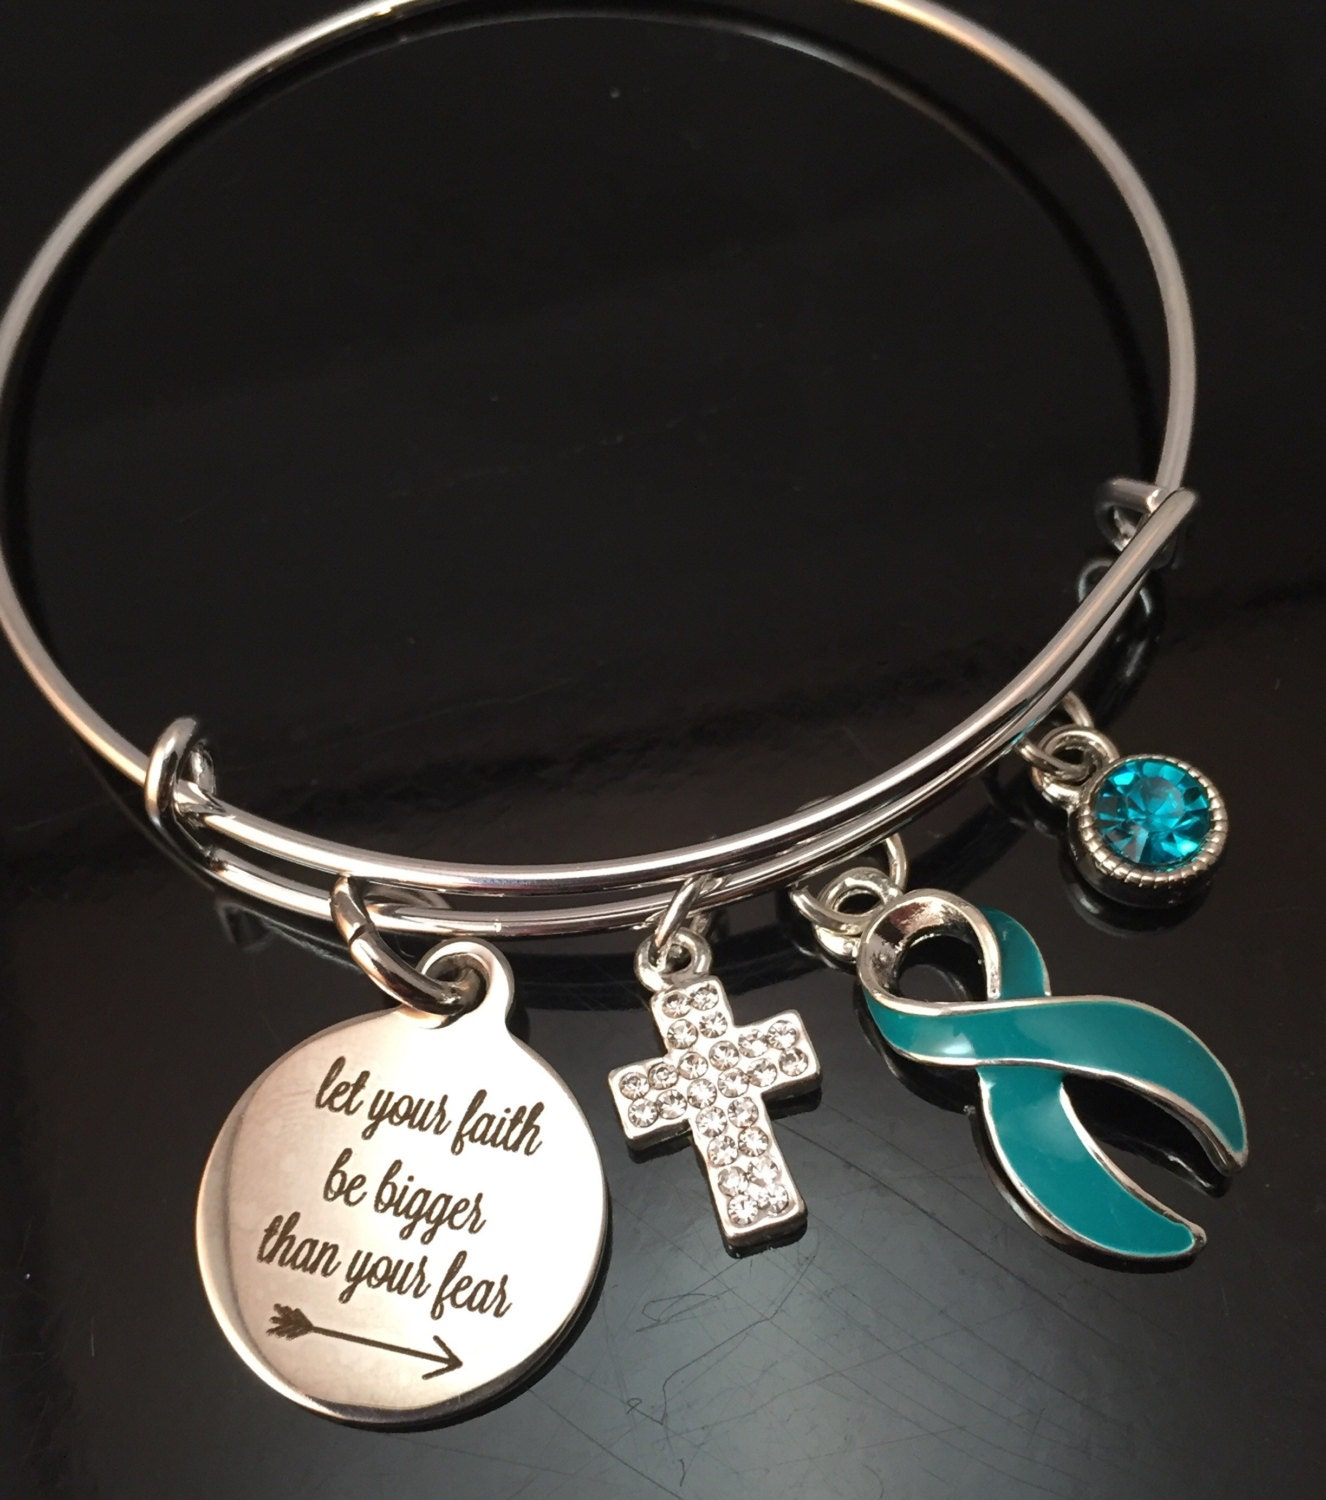 necklace pin gravis or teal ribbon pots ovarian cancer refuse bracelet to sink myasthenia